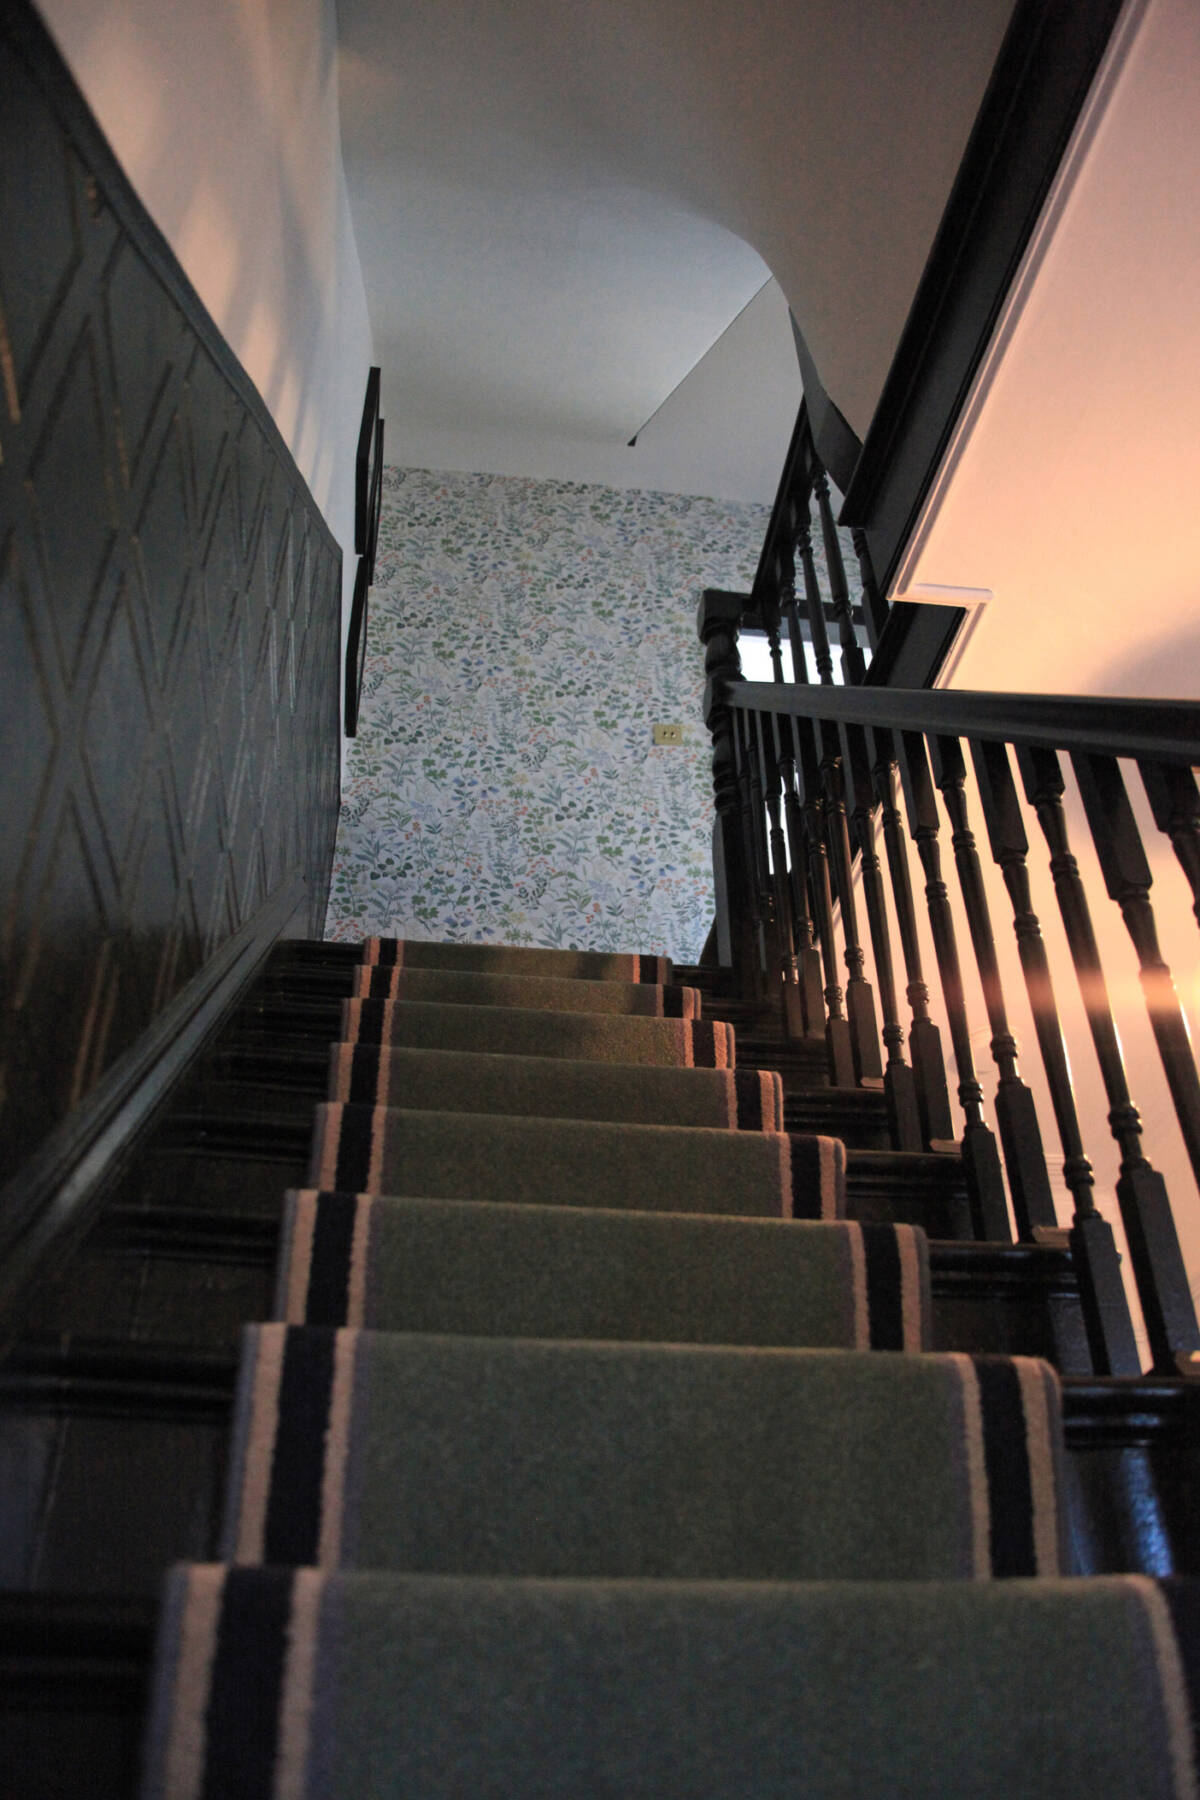 looking up a staircase with a runner carpet